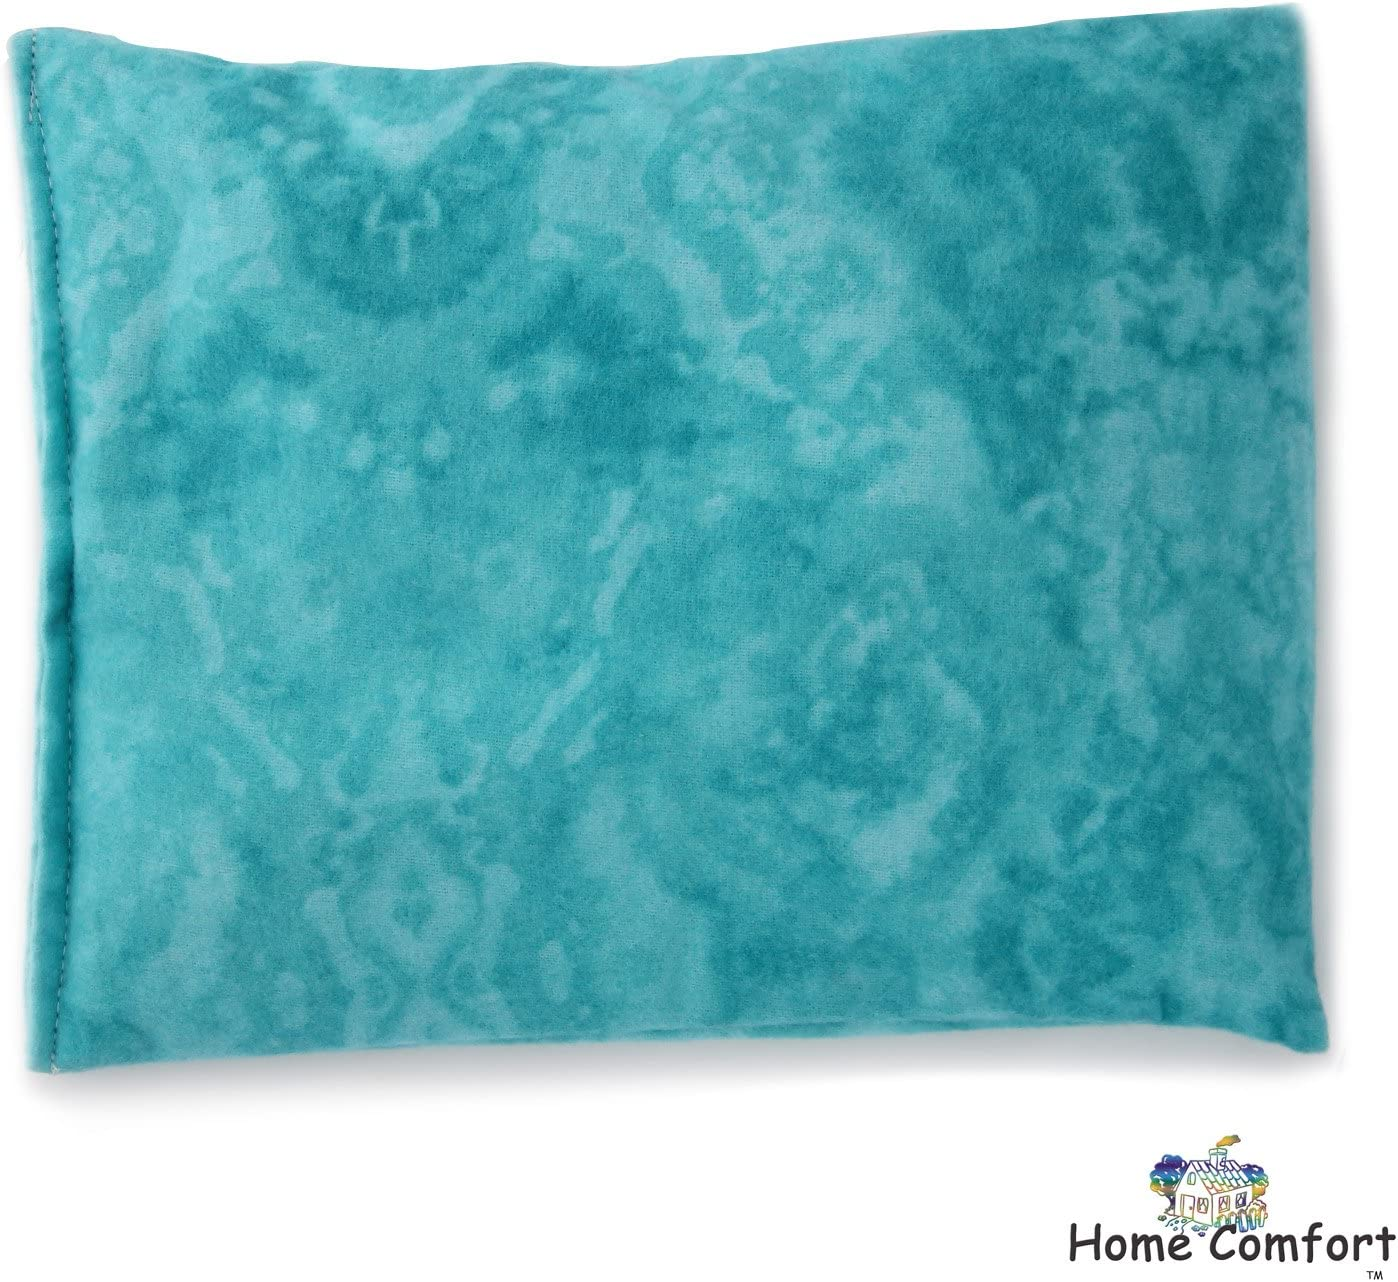 Microwaveable Heating Pad (Teal)